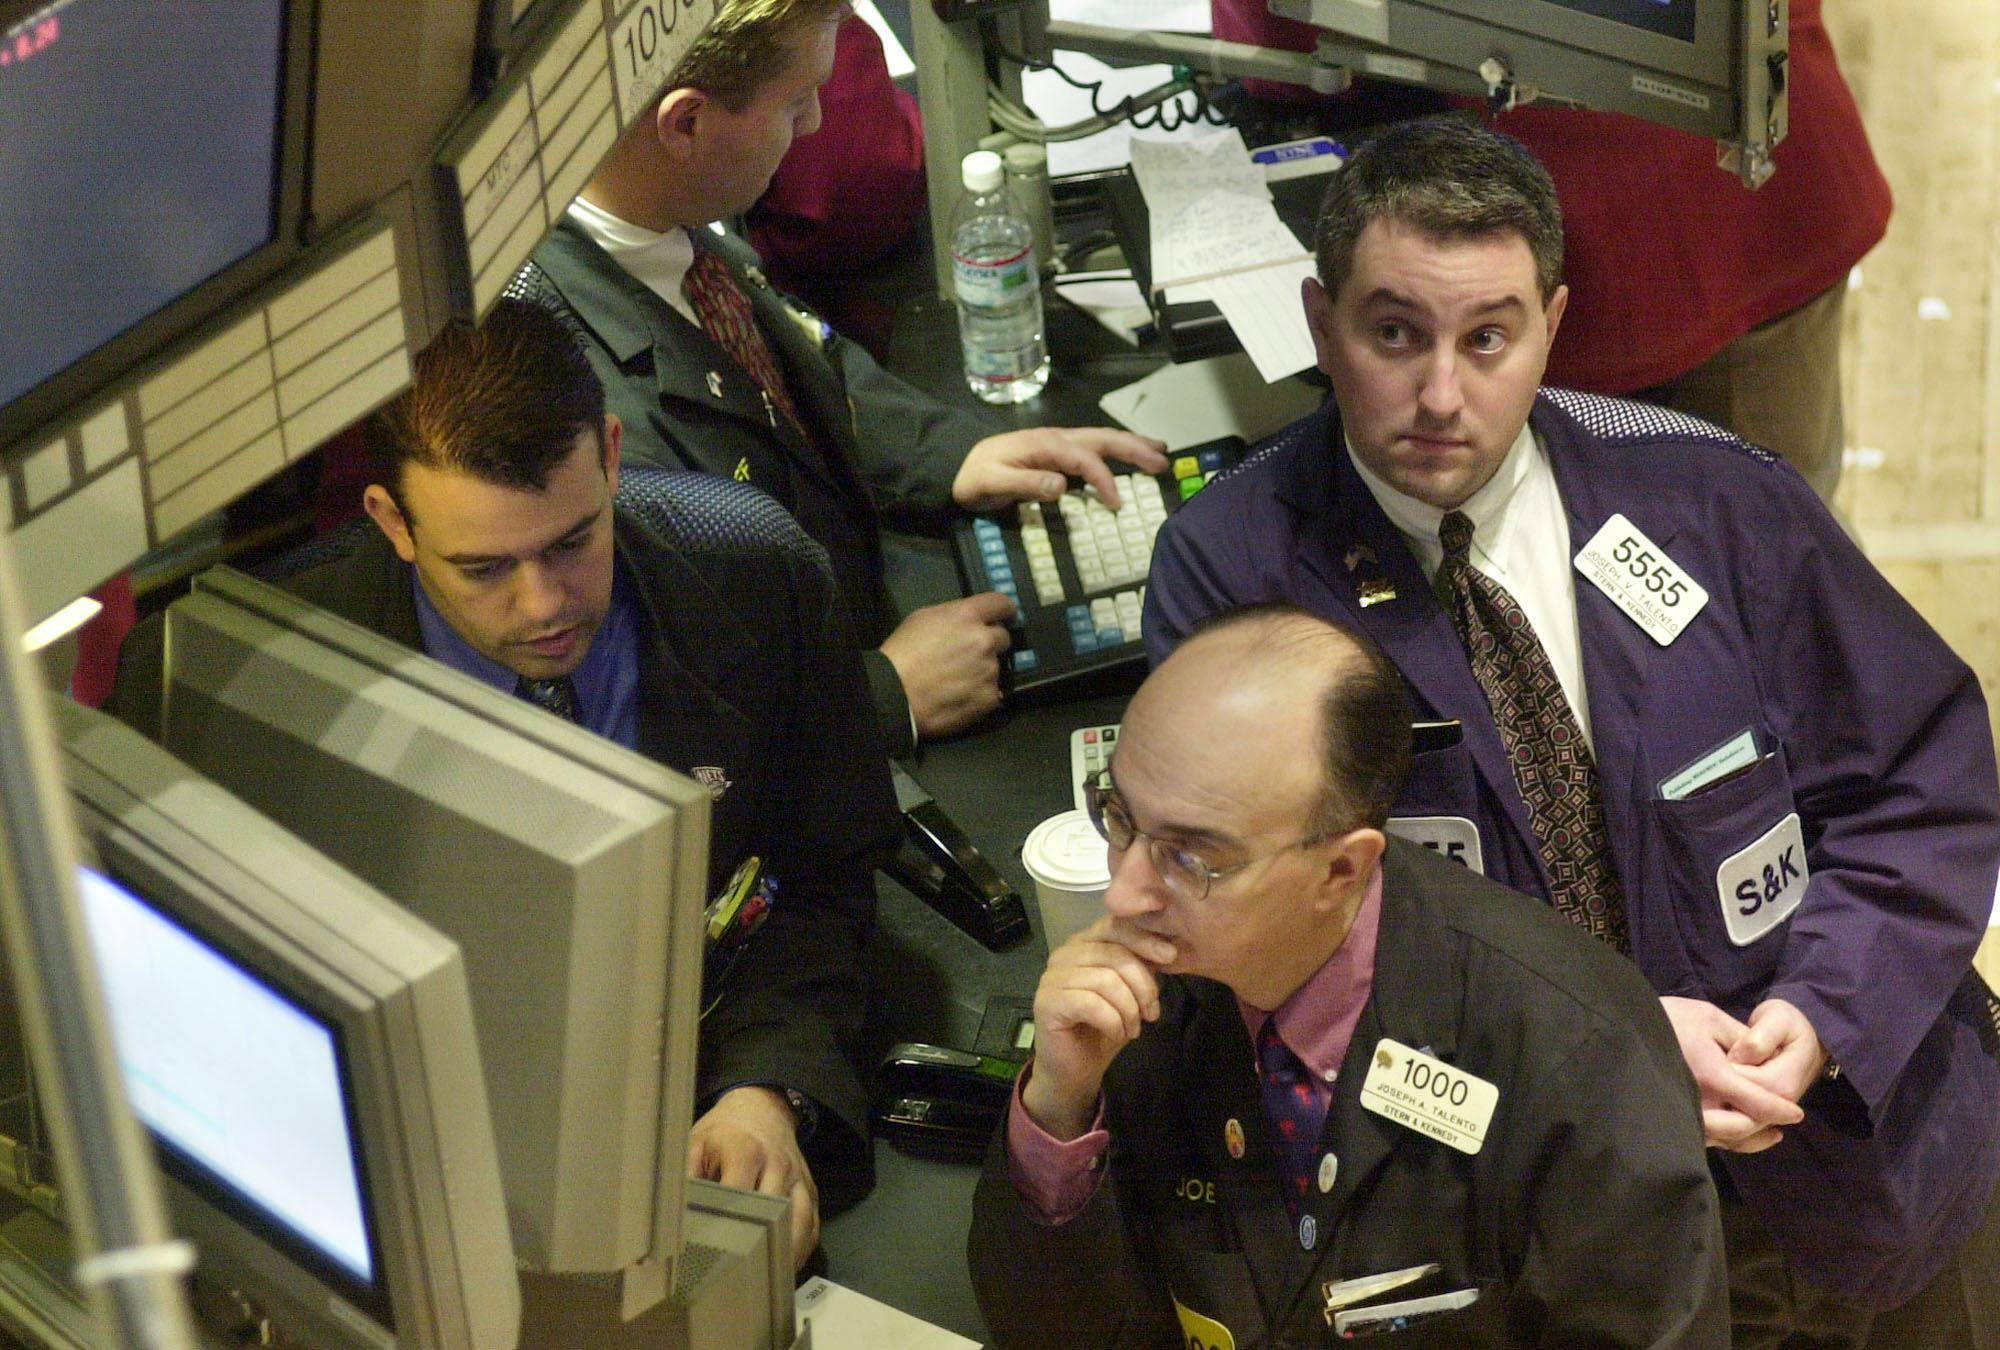 Stock investors watching stock prices fall during a market crash.